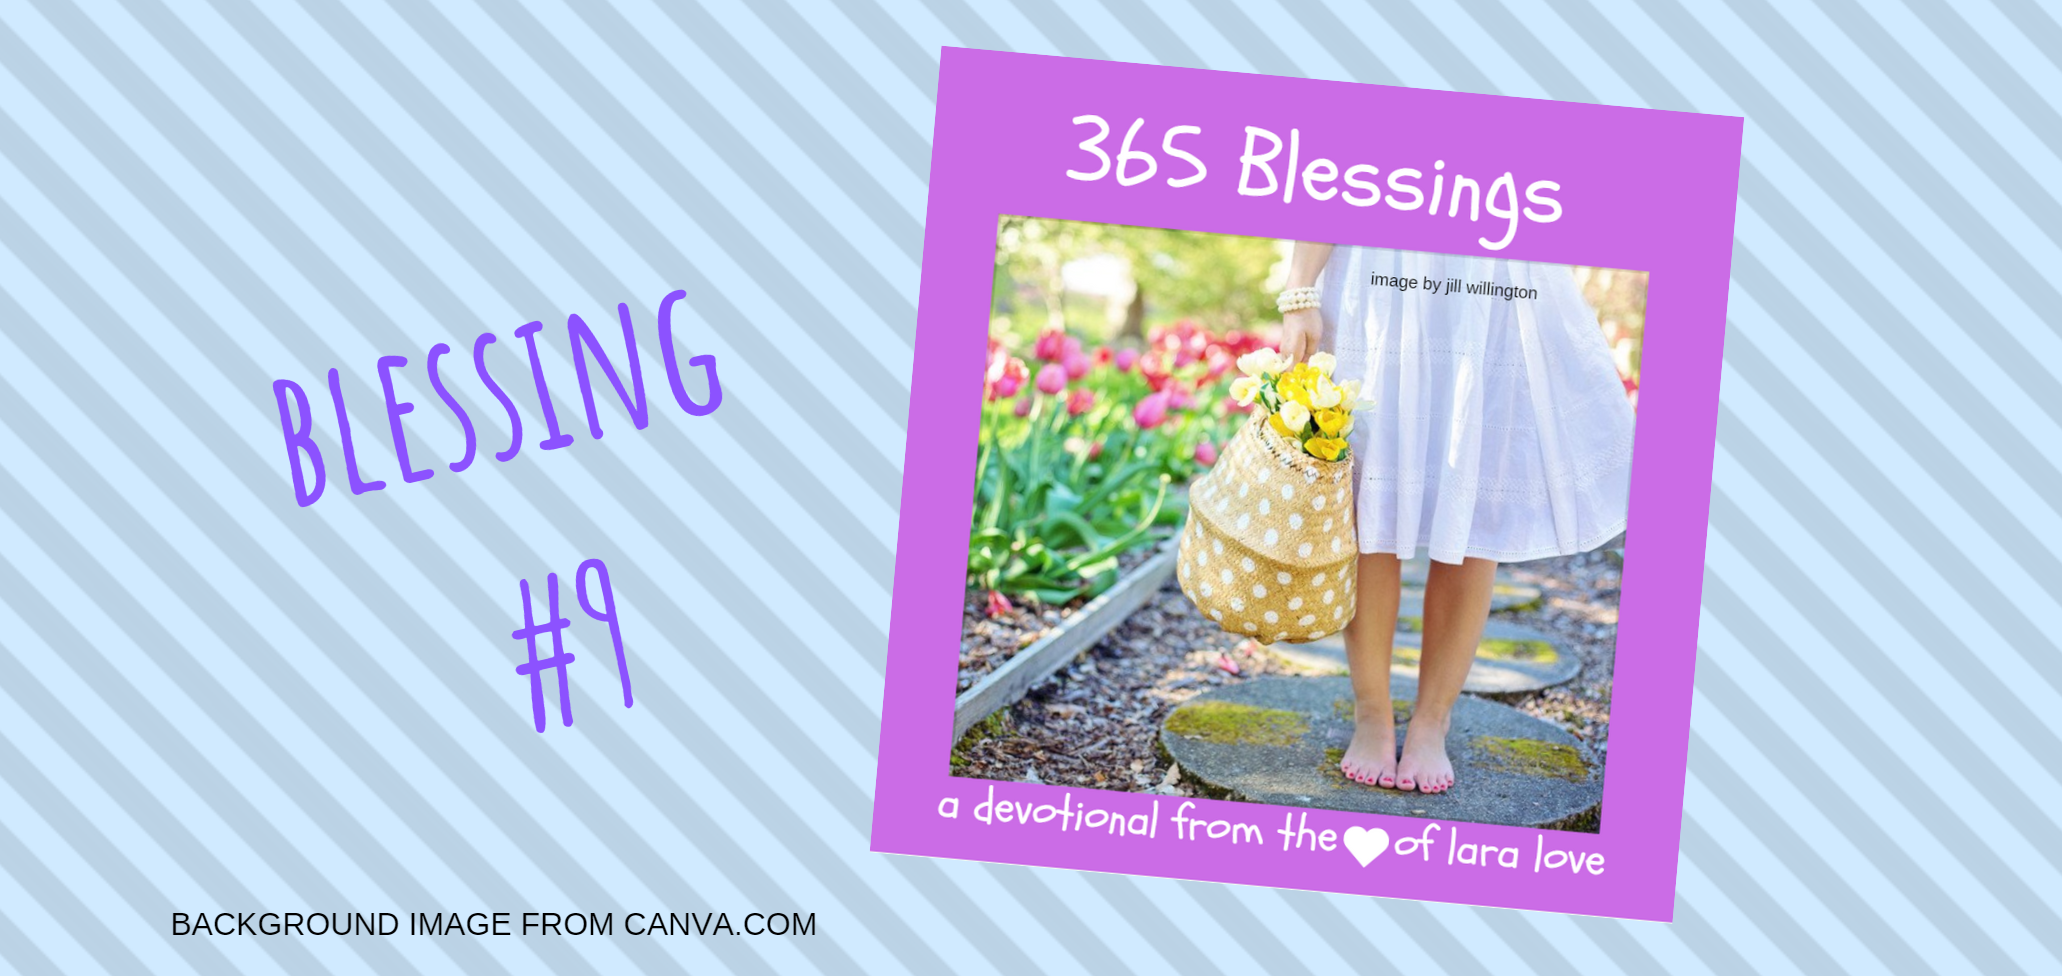 860f5c9daa7 365 Blessings: Blessing #9   Walk by Faith Ministry